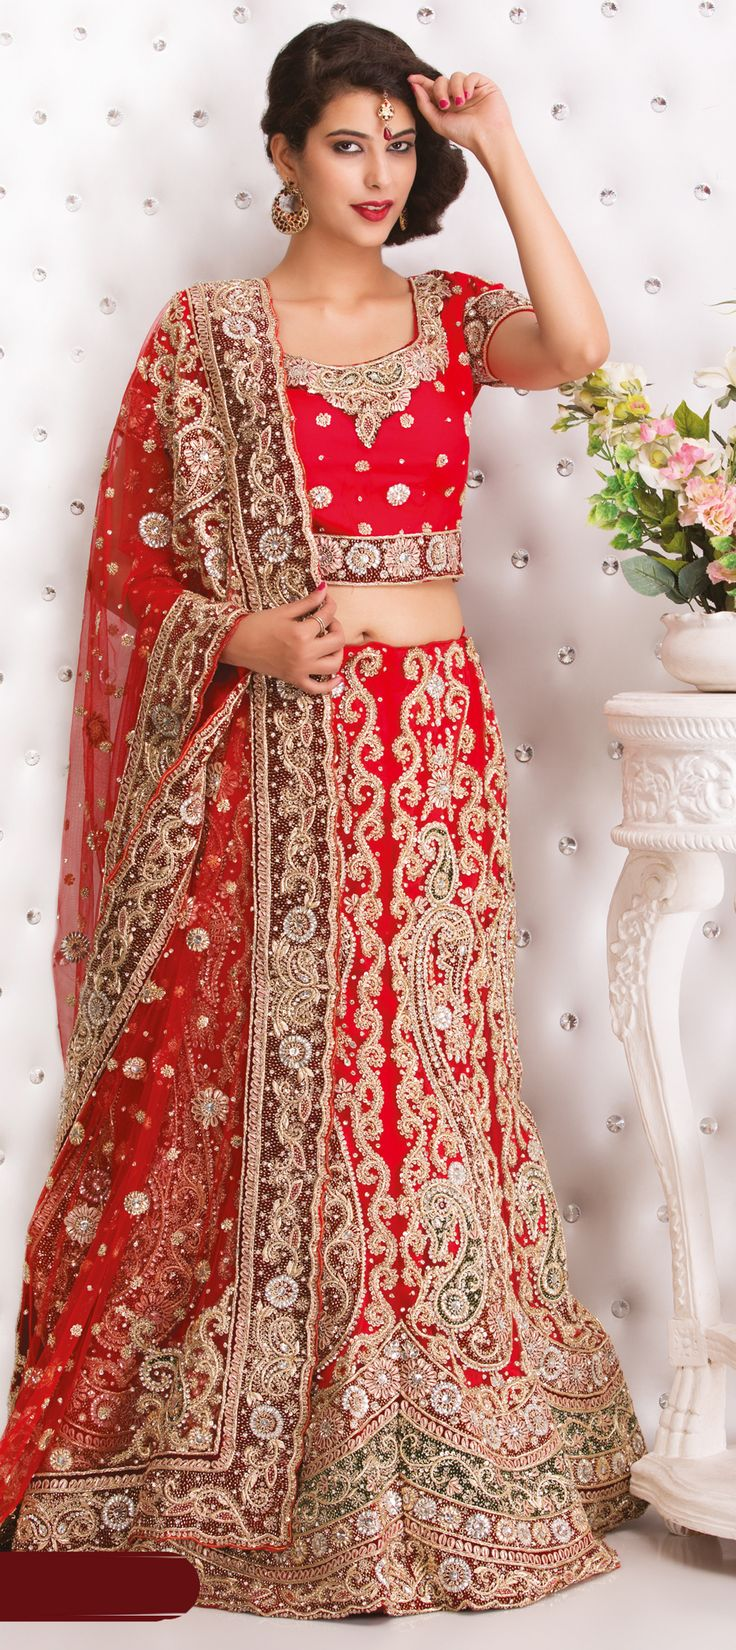 164126: Red and Maroon color family Bridal Lehenga .